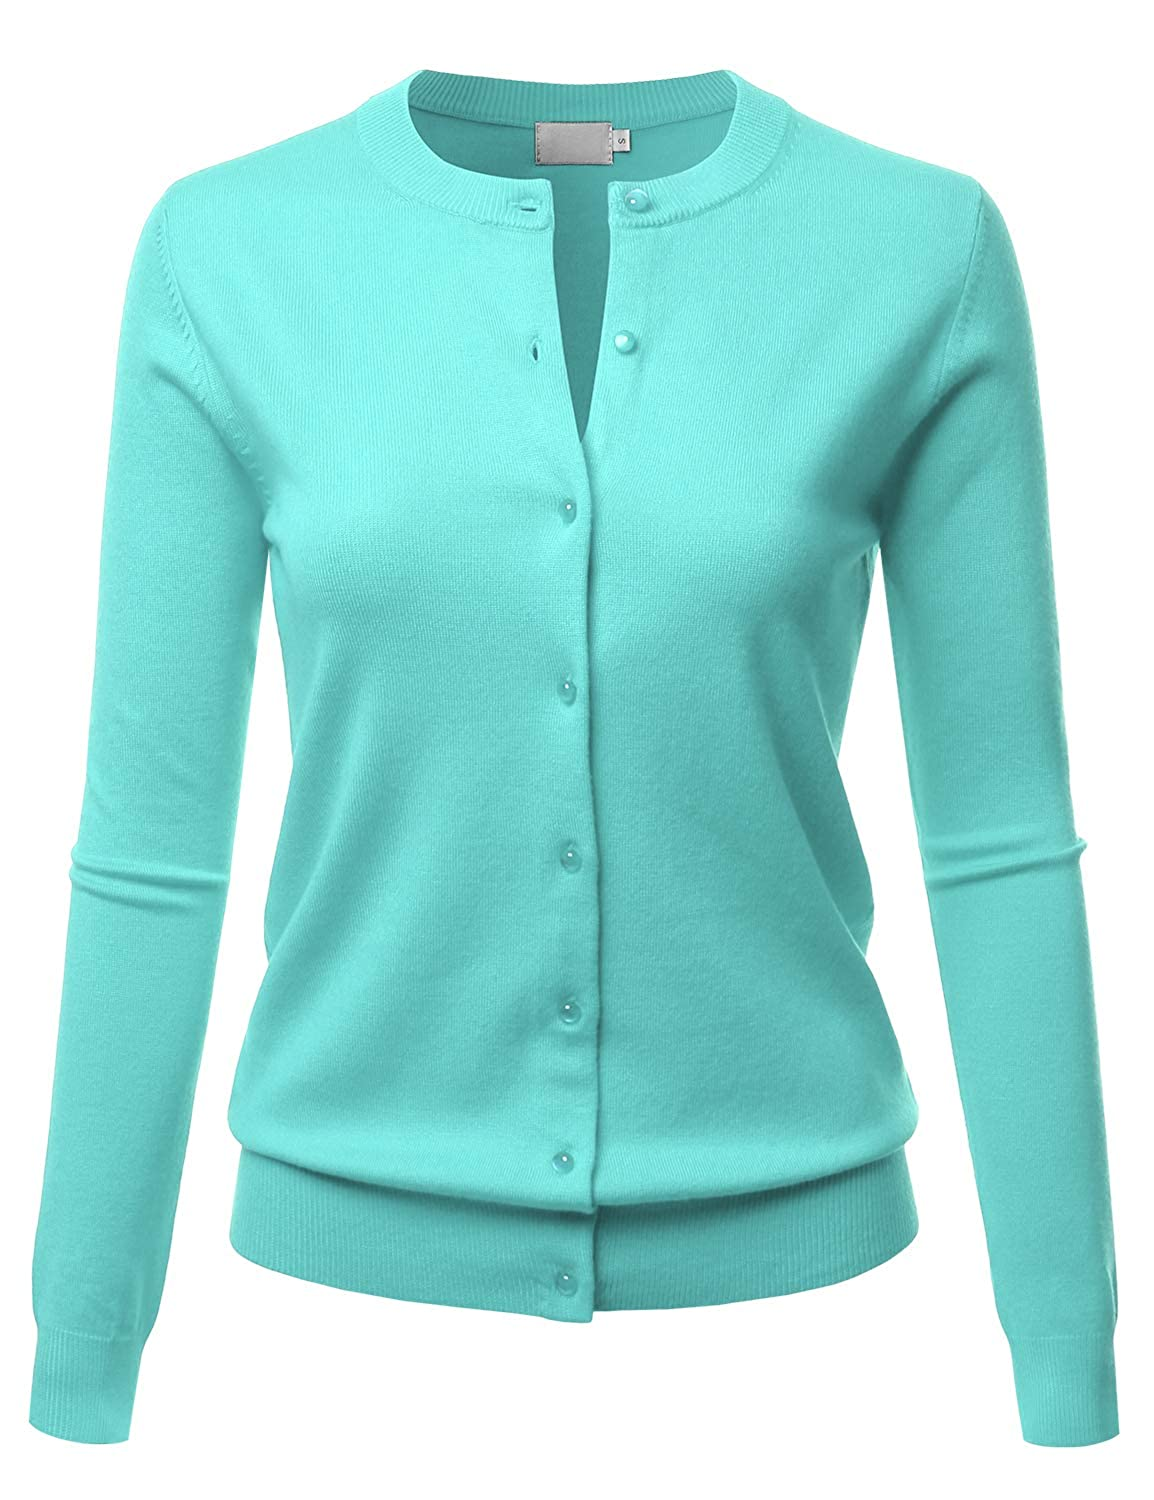 Lbt009mint LALABEE Women's Crew Neck Gem Button Long Sleeve Soft Knit Cardigan Sweater